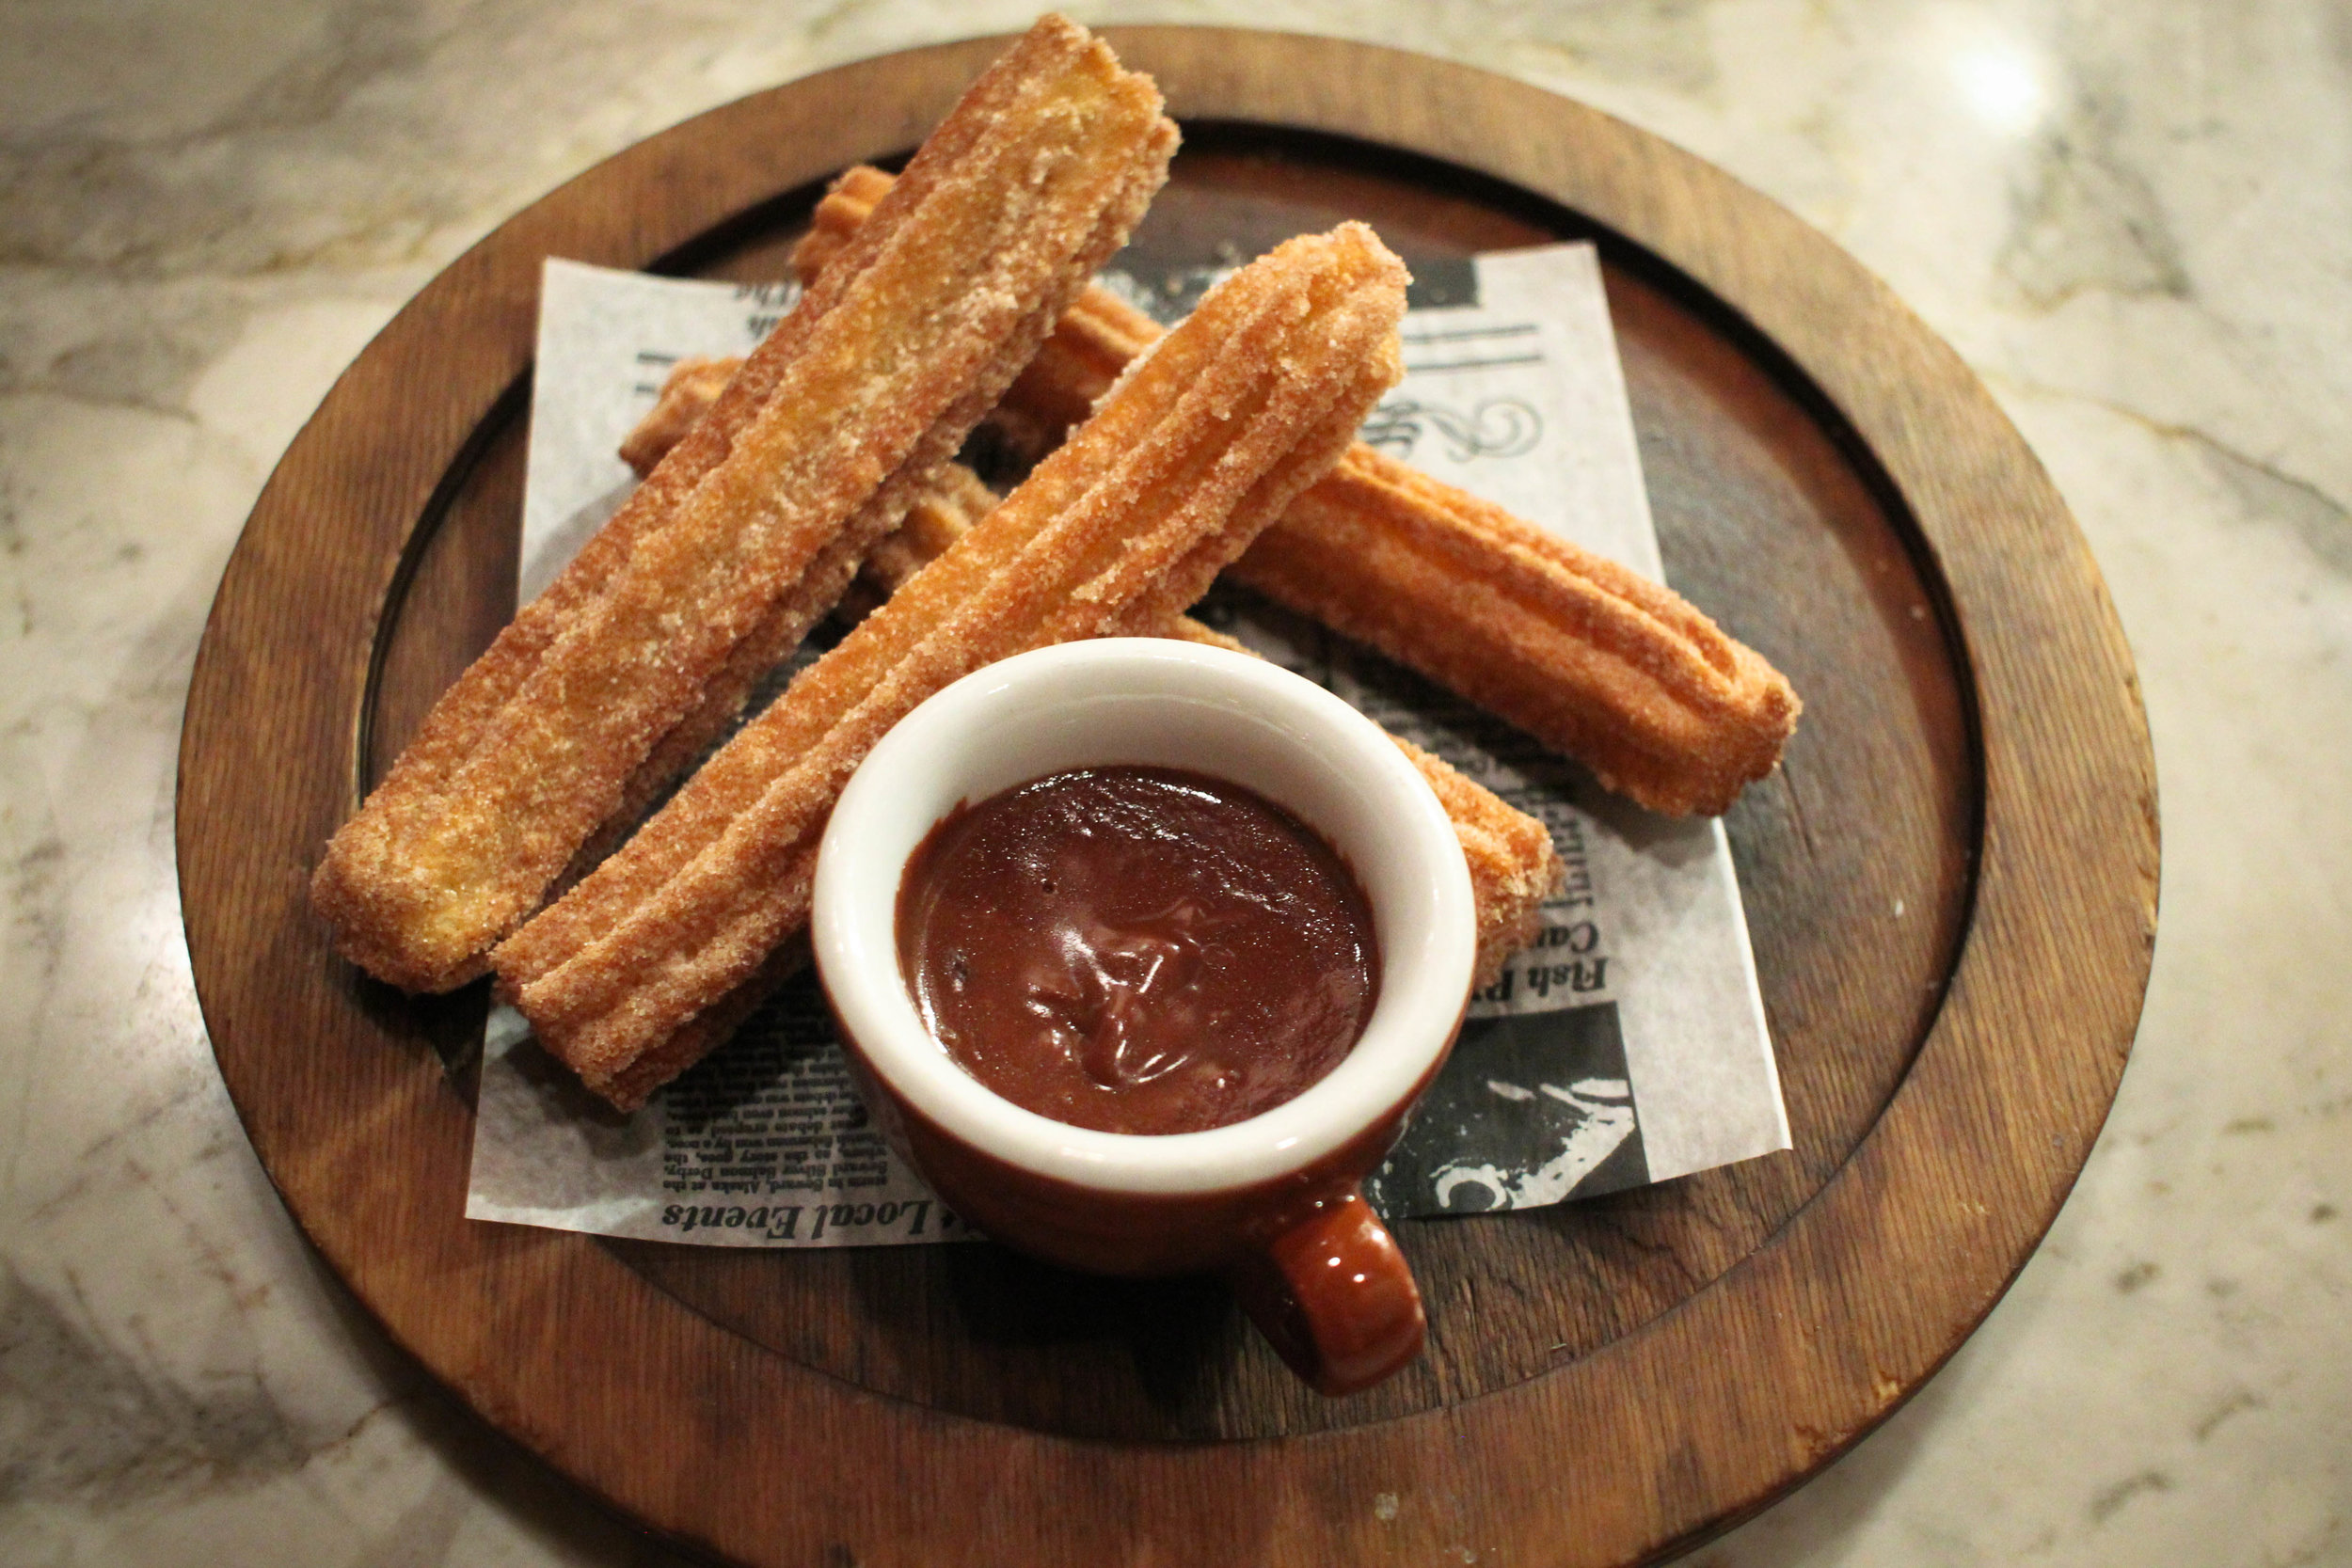 Churros with a dark chocolate dip flavored with coffee and a hint of citris